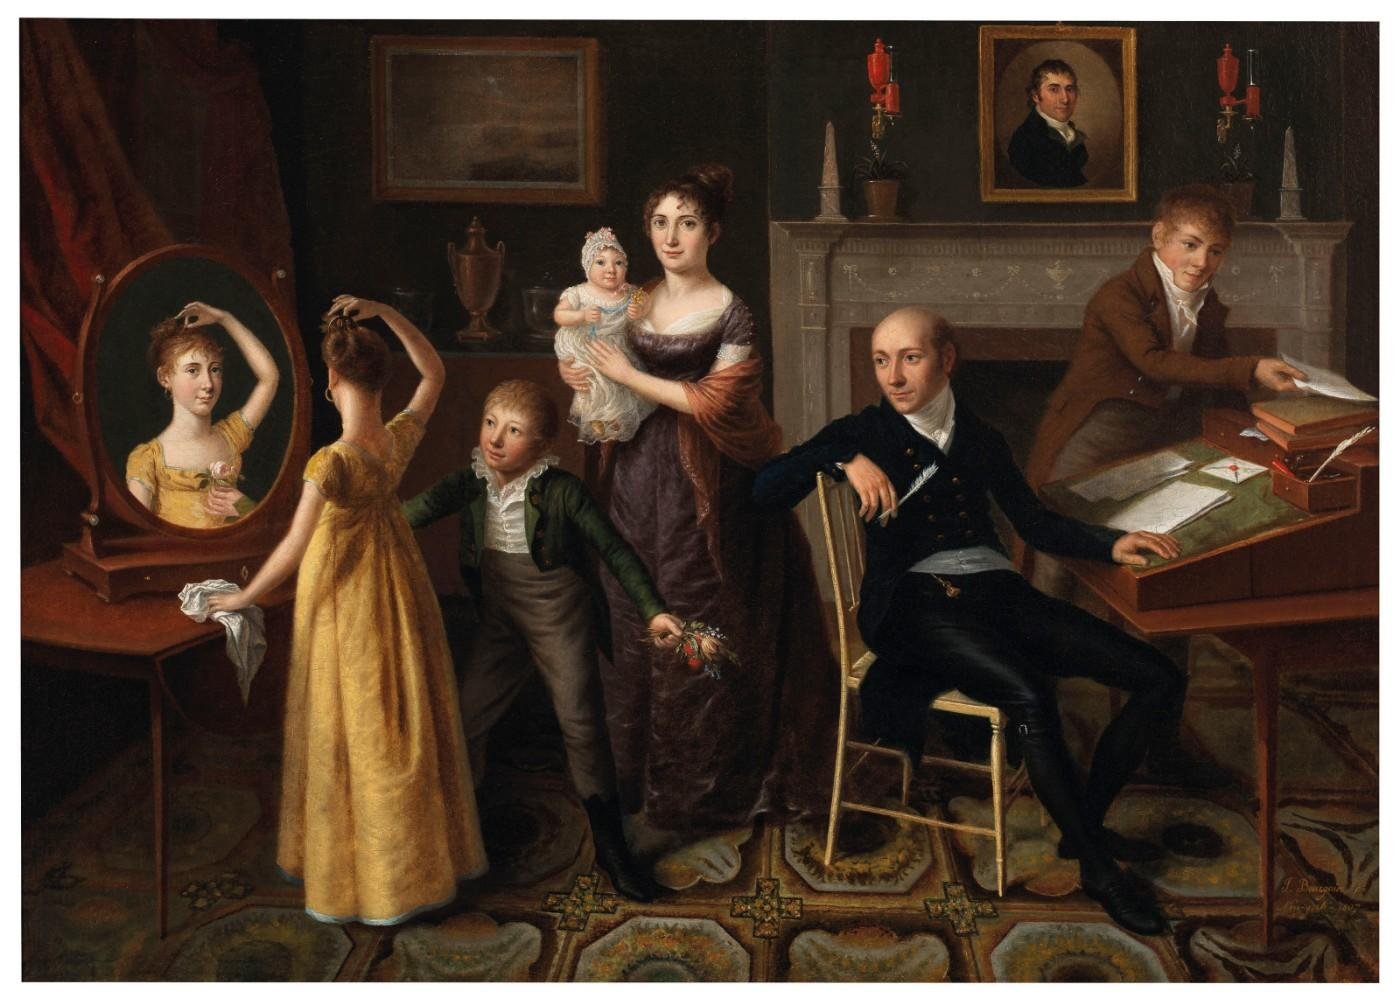 Francois-Joseph Bourgoin (active 1762-1817), Family Group in a New York Interior, 1807